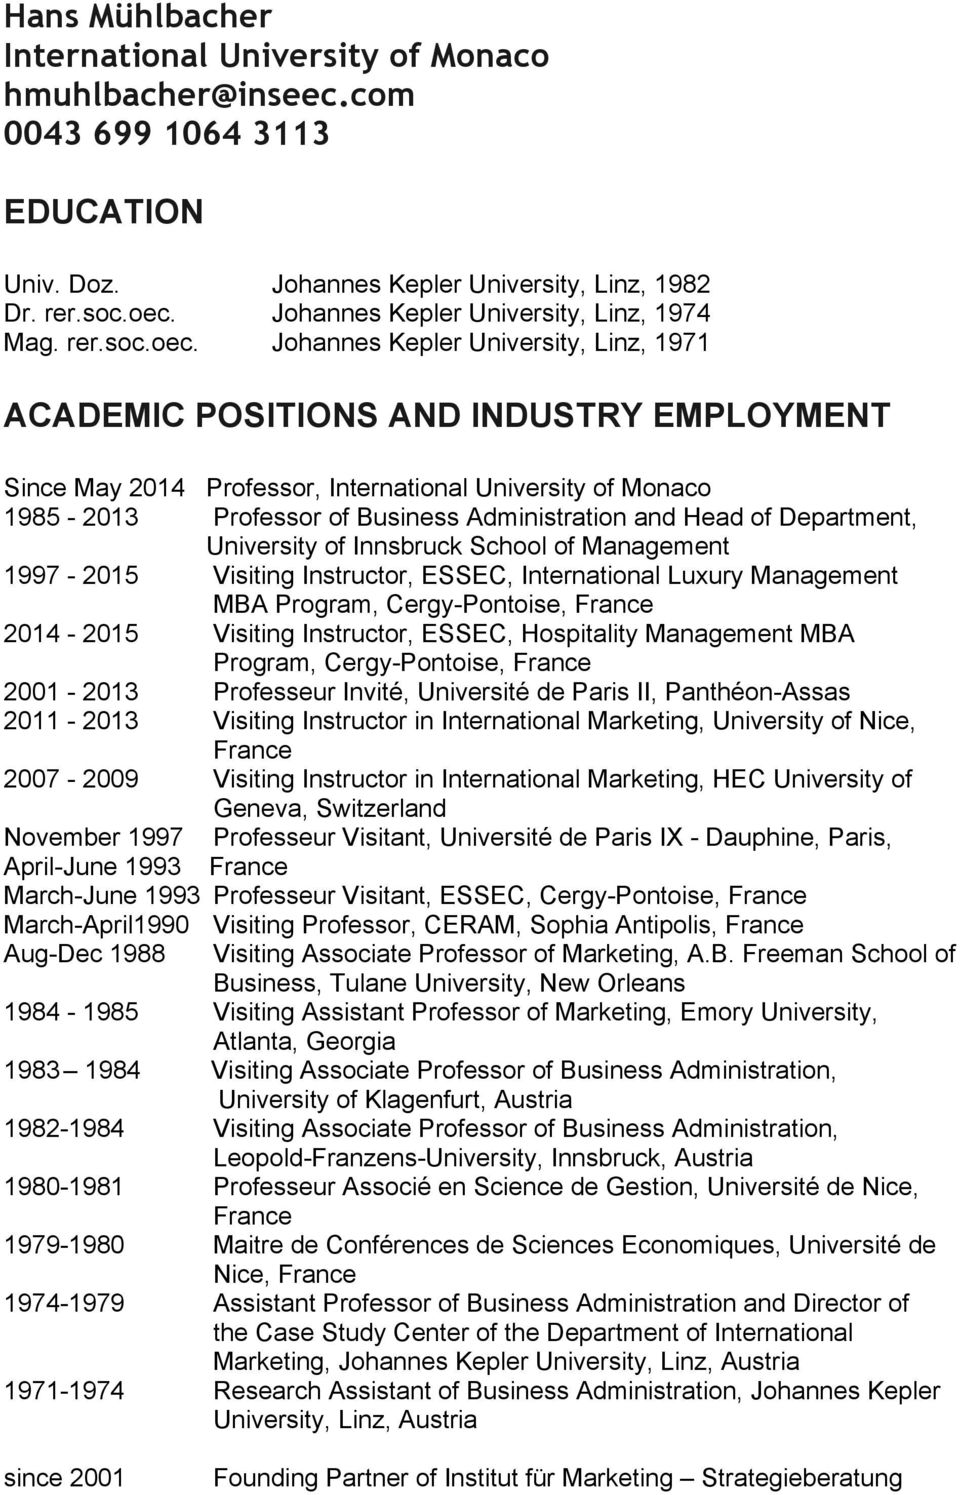 Johannes Kepler University, Linz, 1971 ACADEMIC POSITIONS AND INDUSTRY EMPLOYMENT Since May 2014 Professor, International University of Monaco 1985-2013 Professor of Business Administration and Head